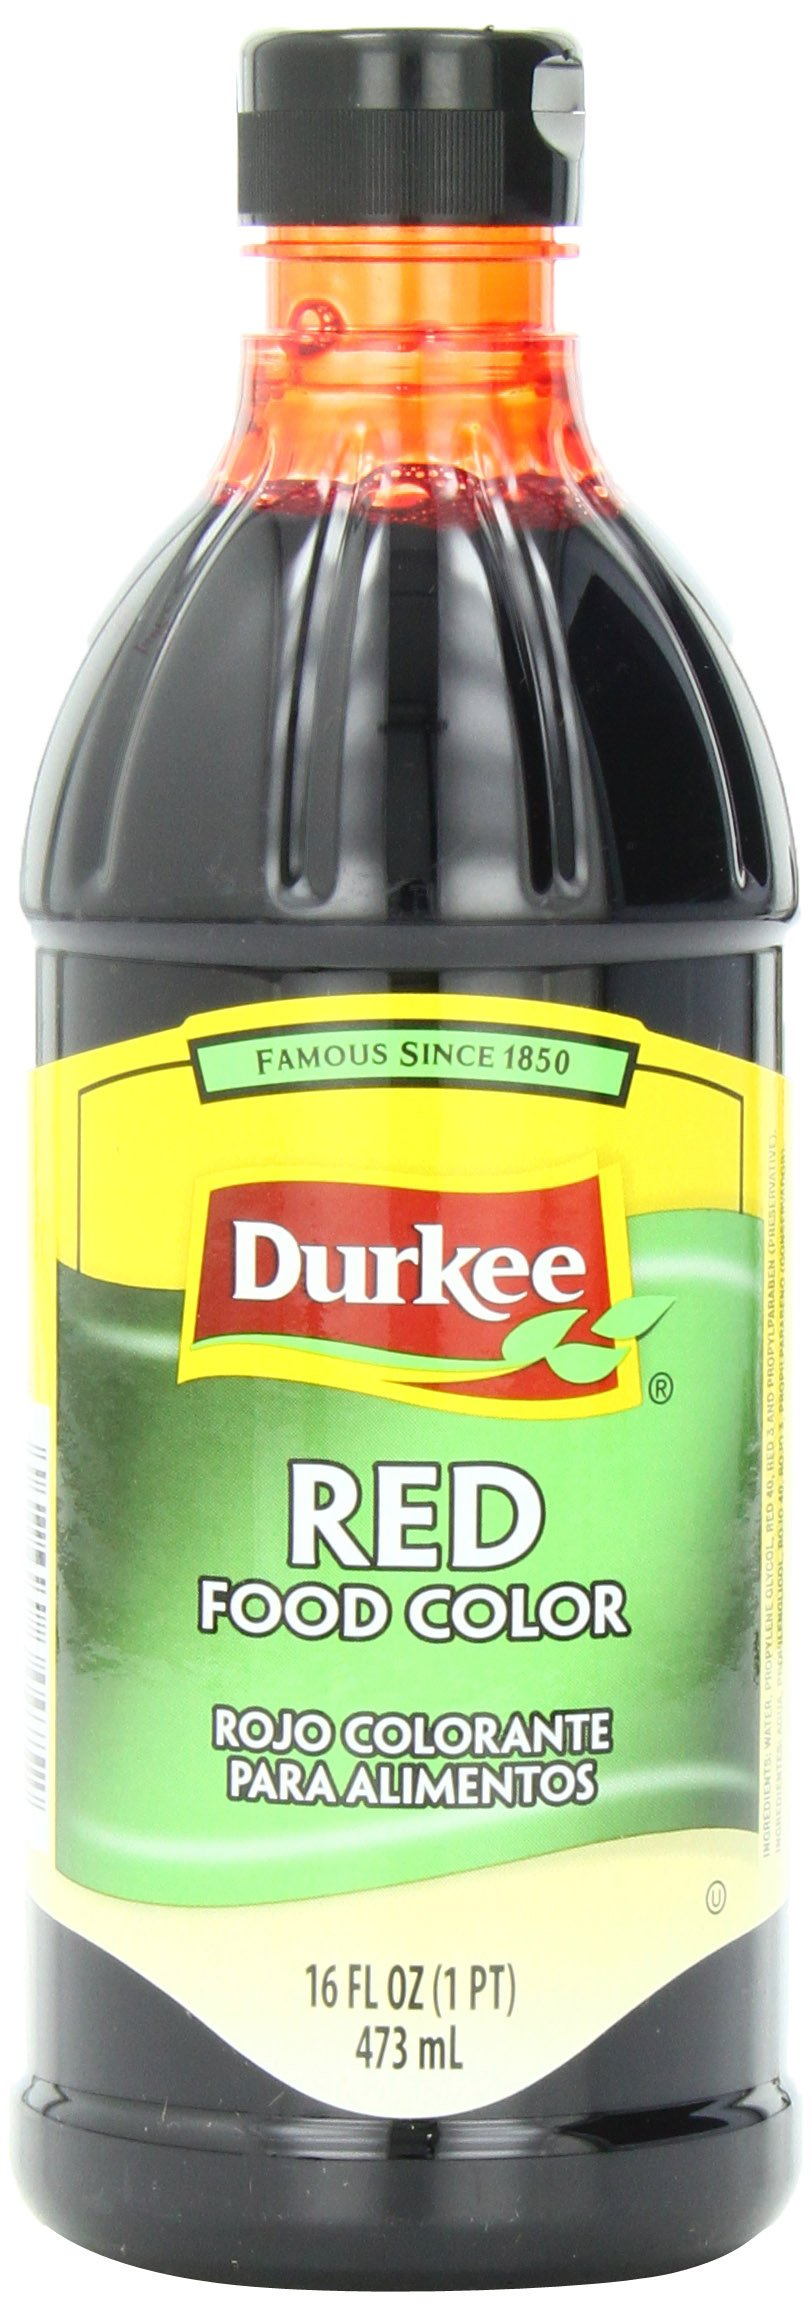 Durkee Red Food Color, 16-Ounce Containers (Pack of 3)